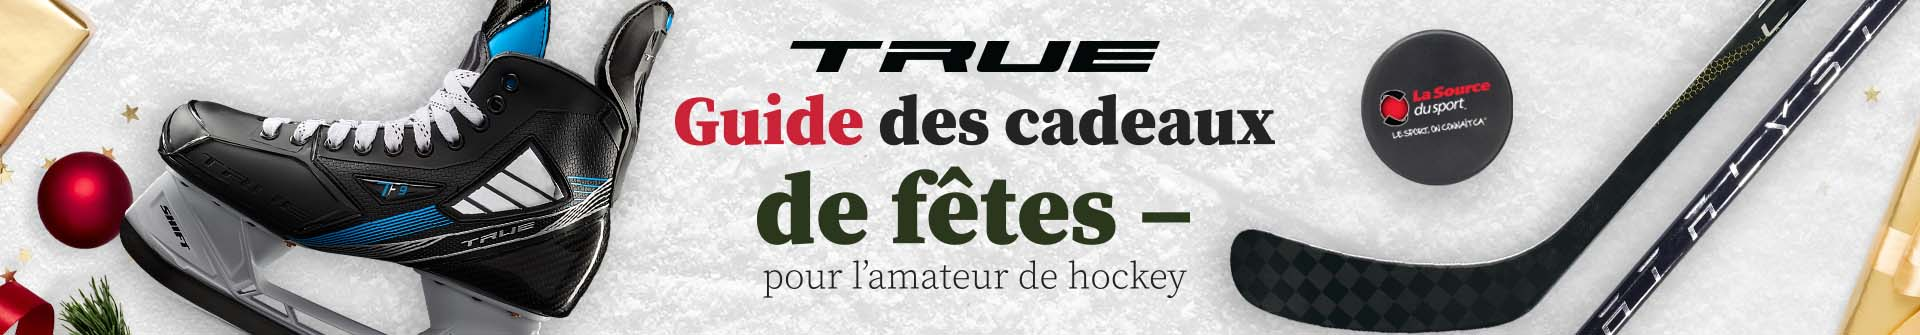 Shop TRUE Hockey Gift Ideas At Source For Sports Hockey Stores Near You.